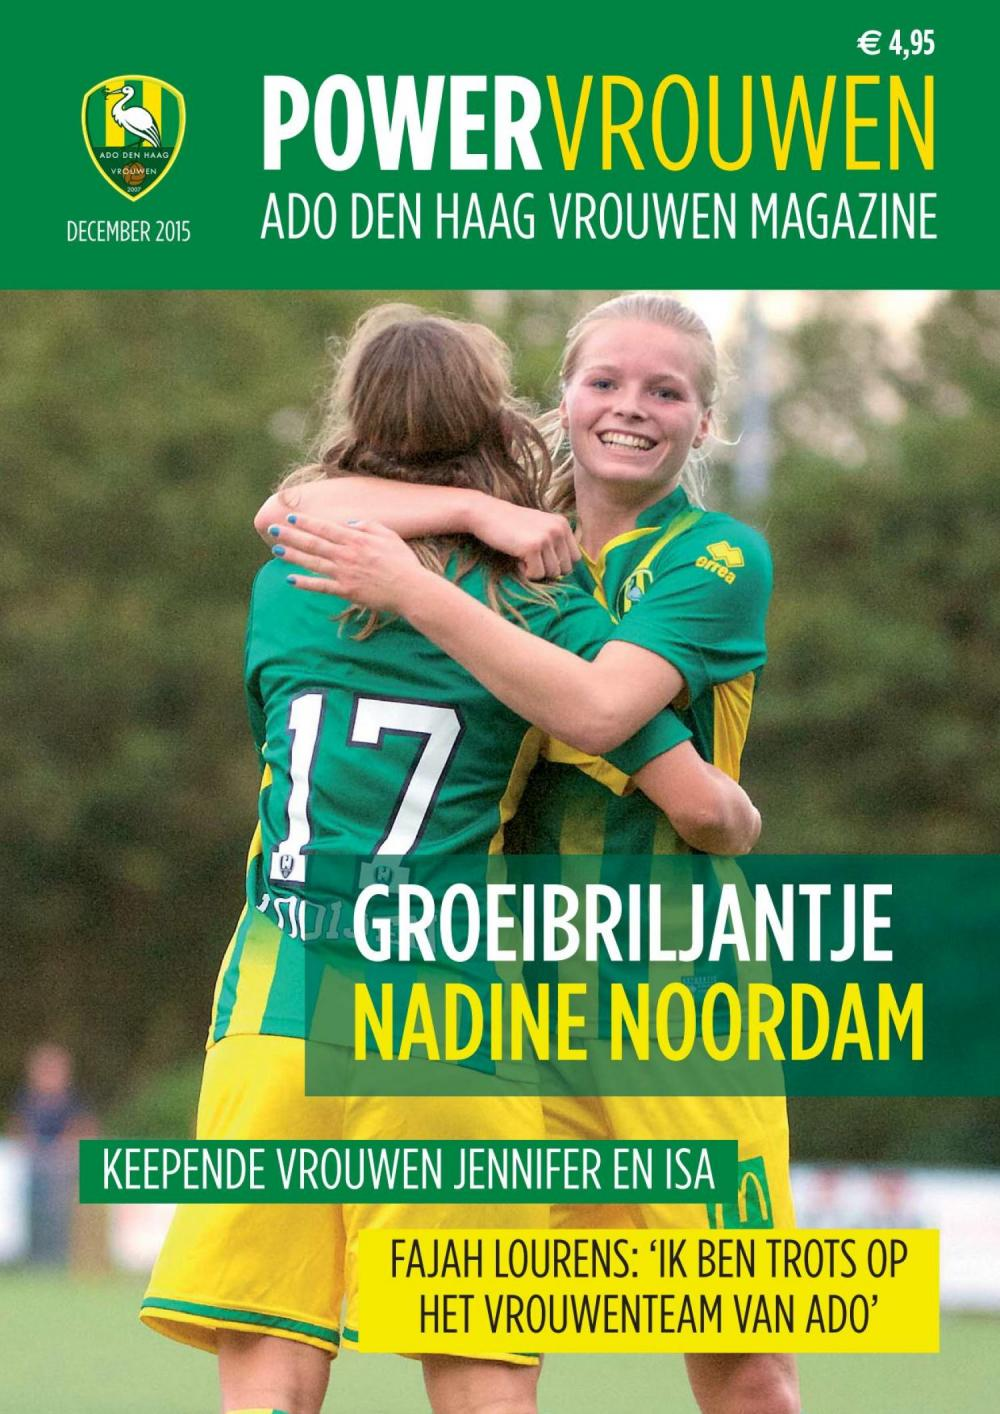 Powervrouwen Magazine december 2015